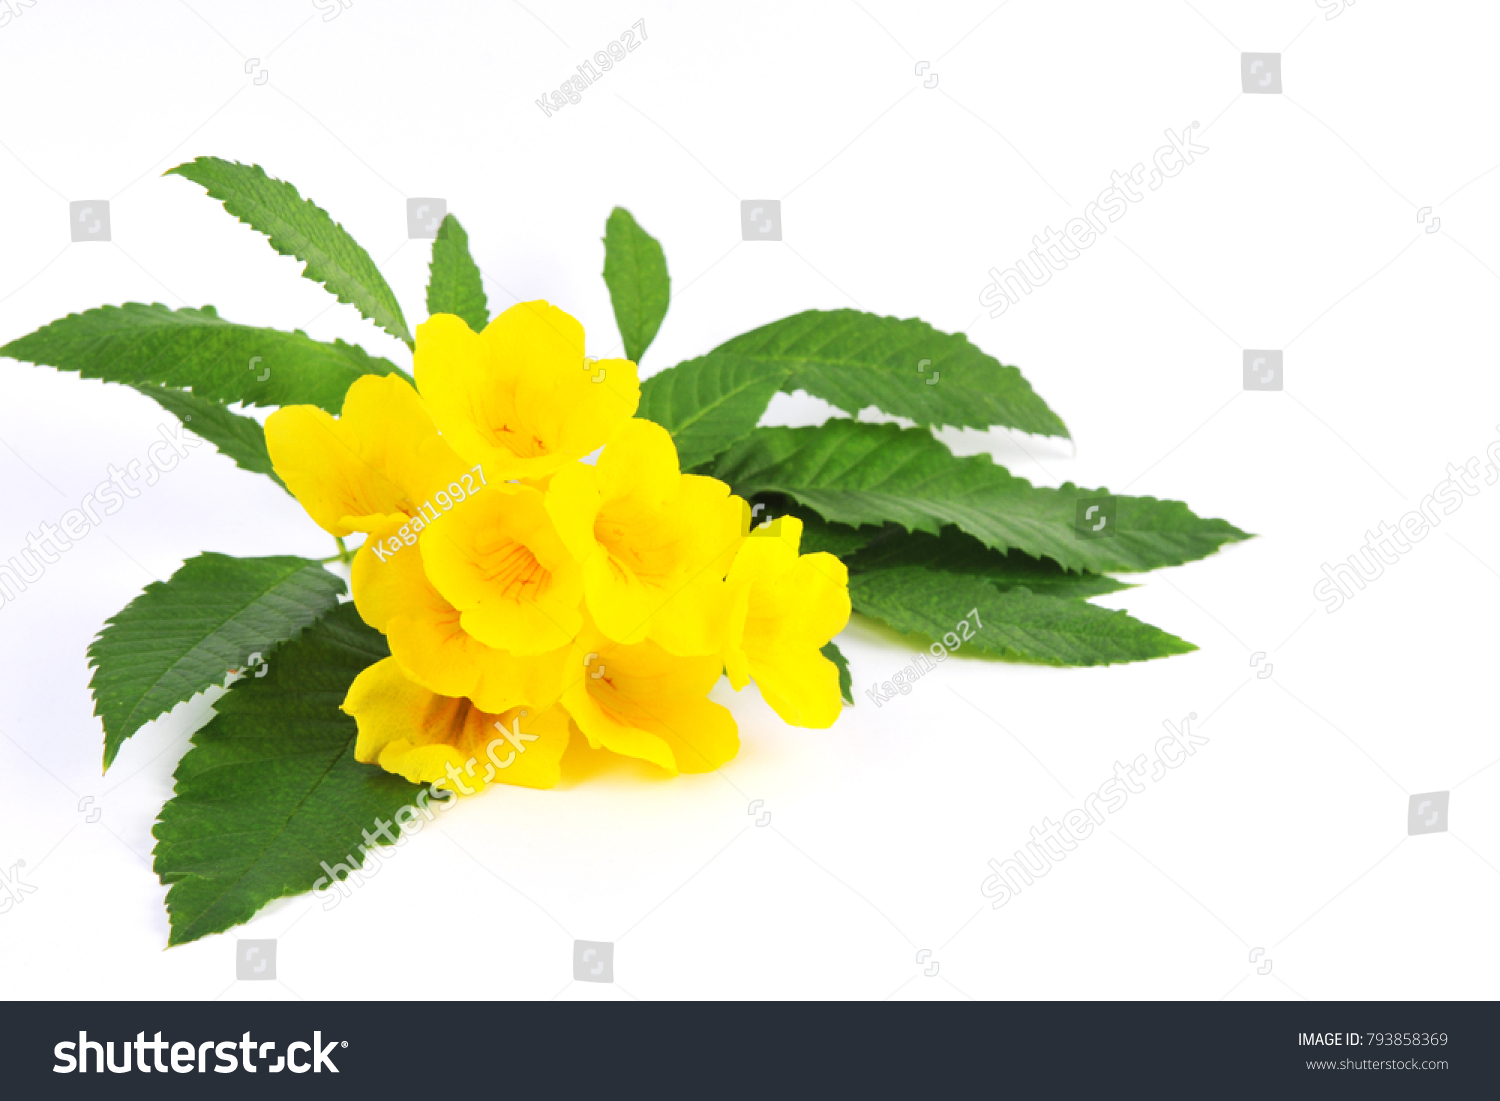 Yellow Elder Flower Yellow Elder Trumpetbush Trumpetflower Stock